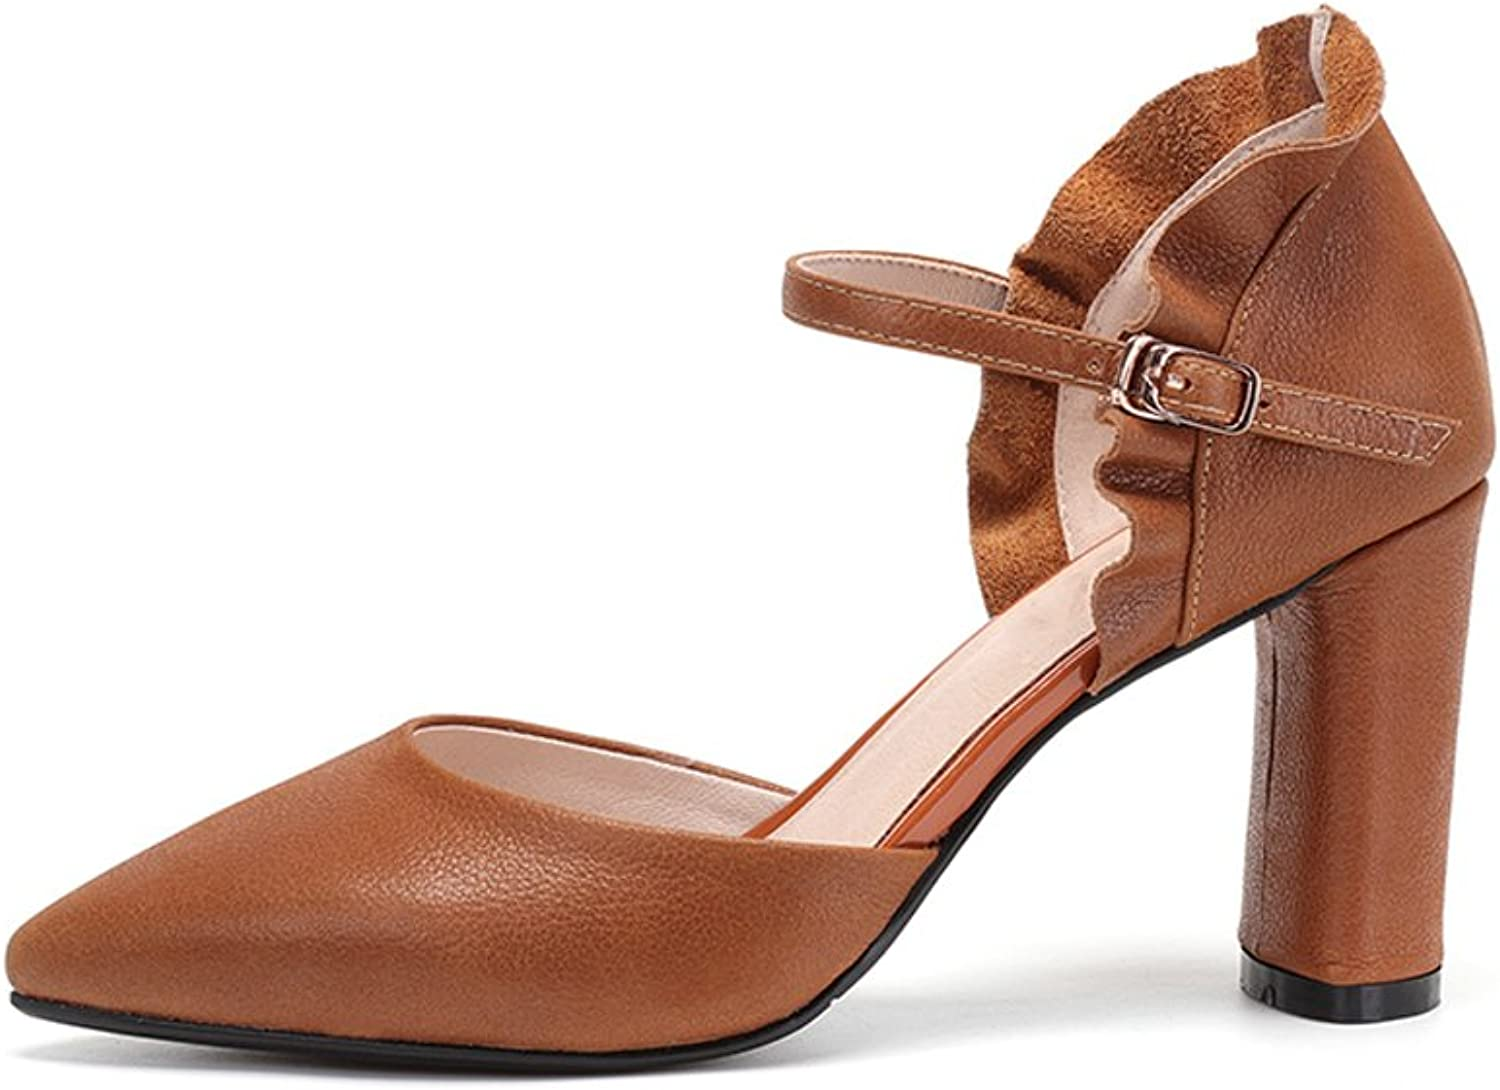 YUBIN Summer Spring Youth Sandals Women's Baotou shoes Wild Leather Buckle with Pointed Hollow Hollow High Heels (color   Brown, Size   38)